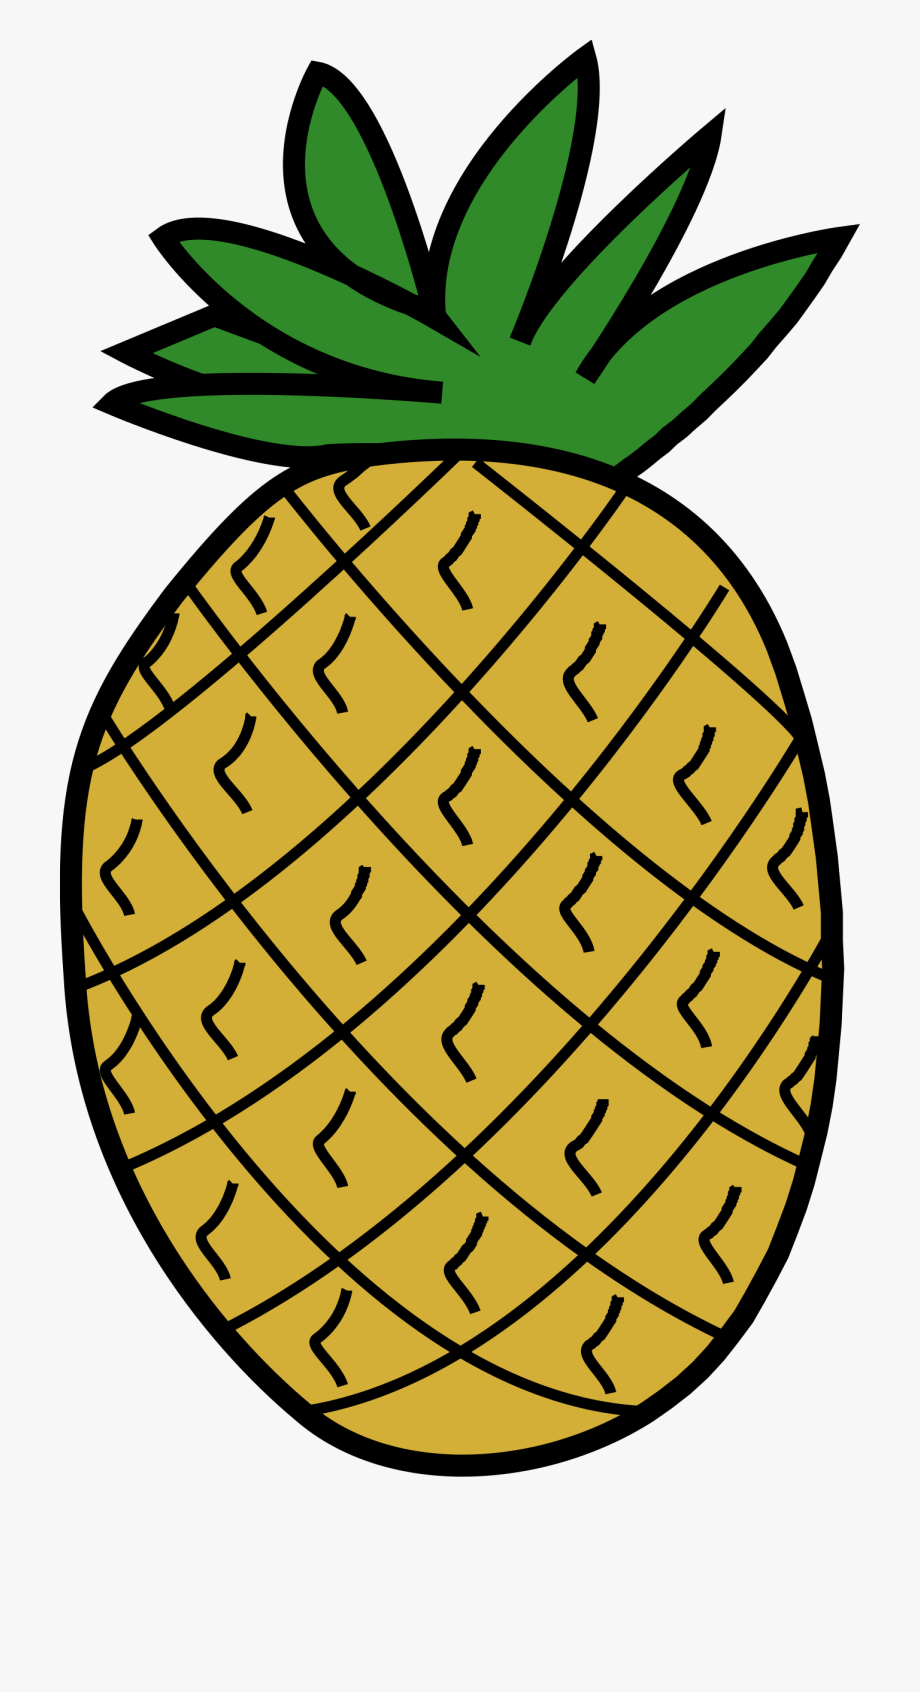 Clipart Pineapple.